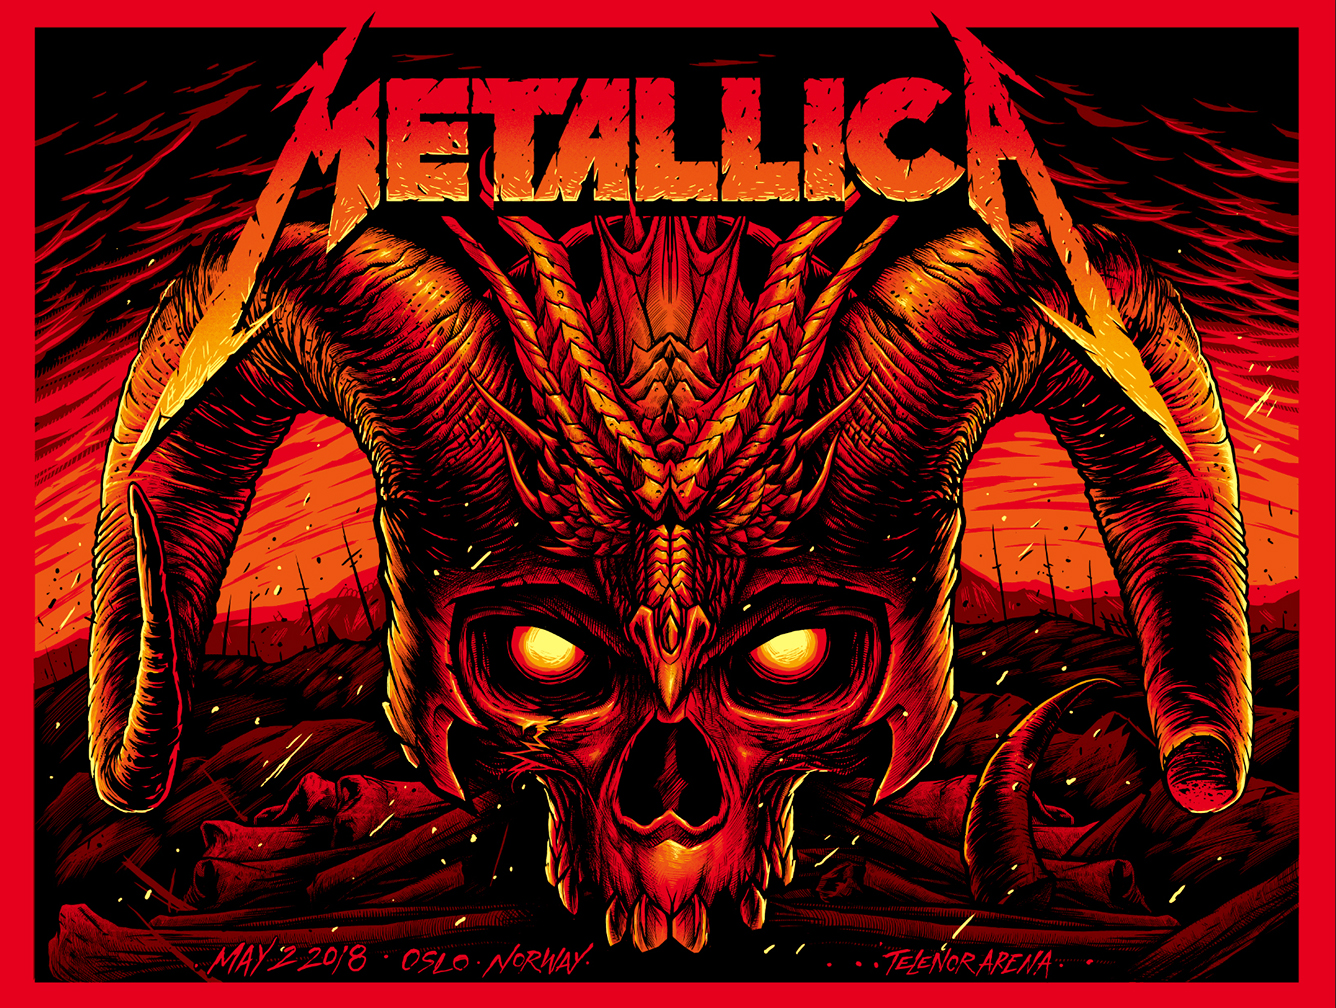 Oslo May 2nd – Limited Edition Numbered Screen Printed Event Poster - Metallica